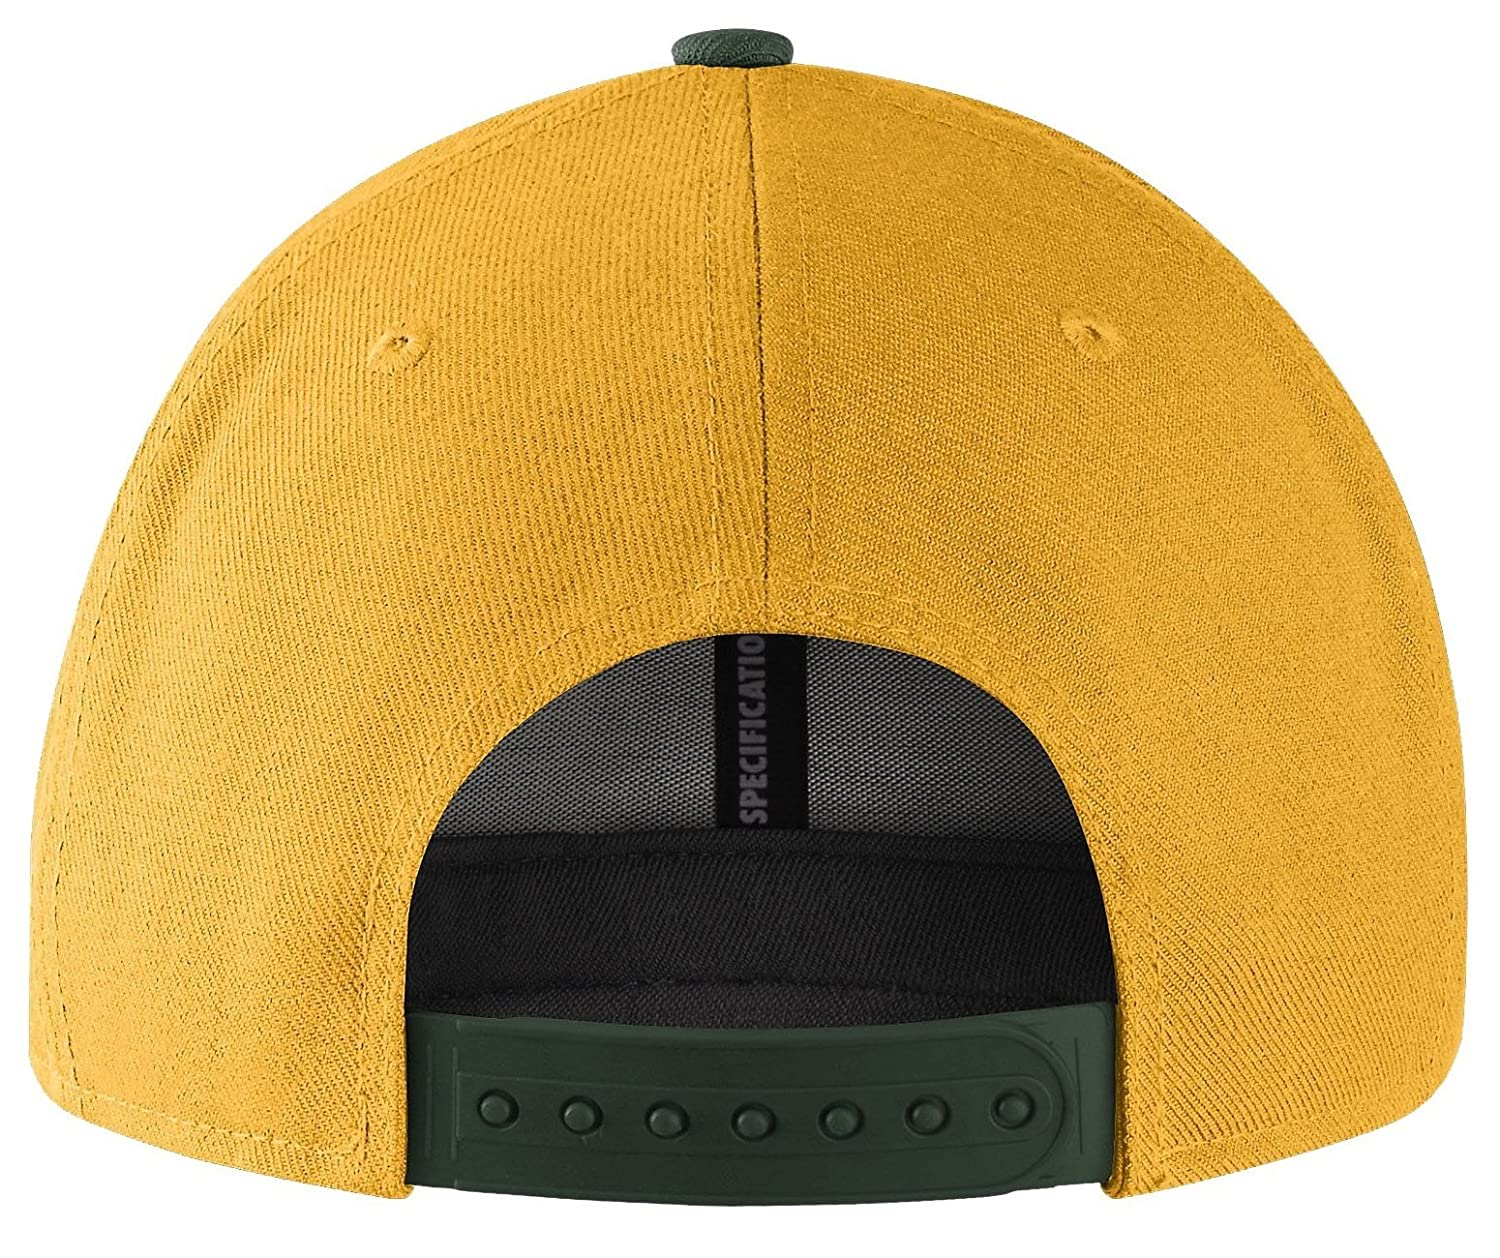 2763355b87e Amazon.com   Nike Laser Pulse True NFL Green Bay Packers Adjustable Cap  Adult Unisex   Sports   Outdoors